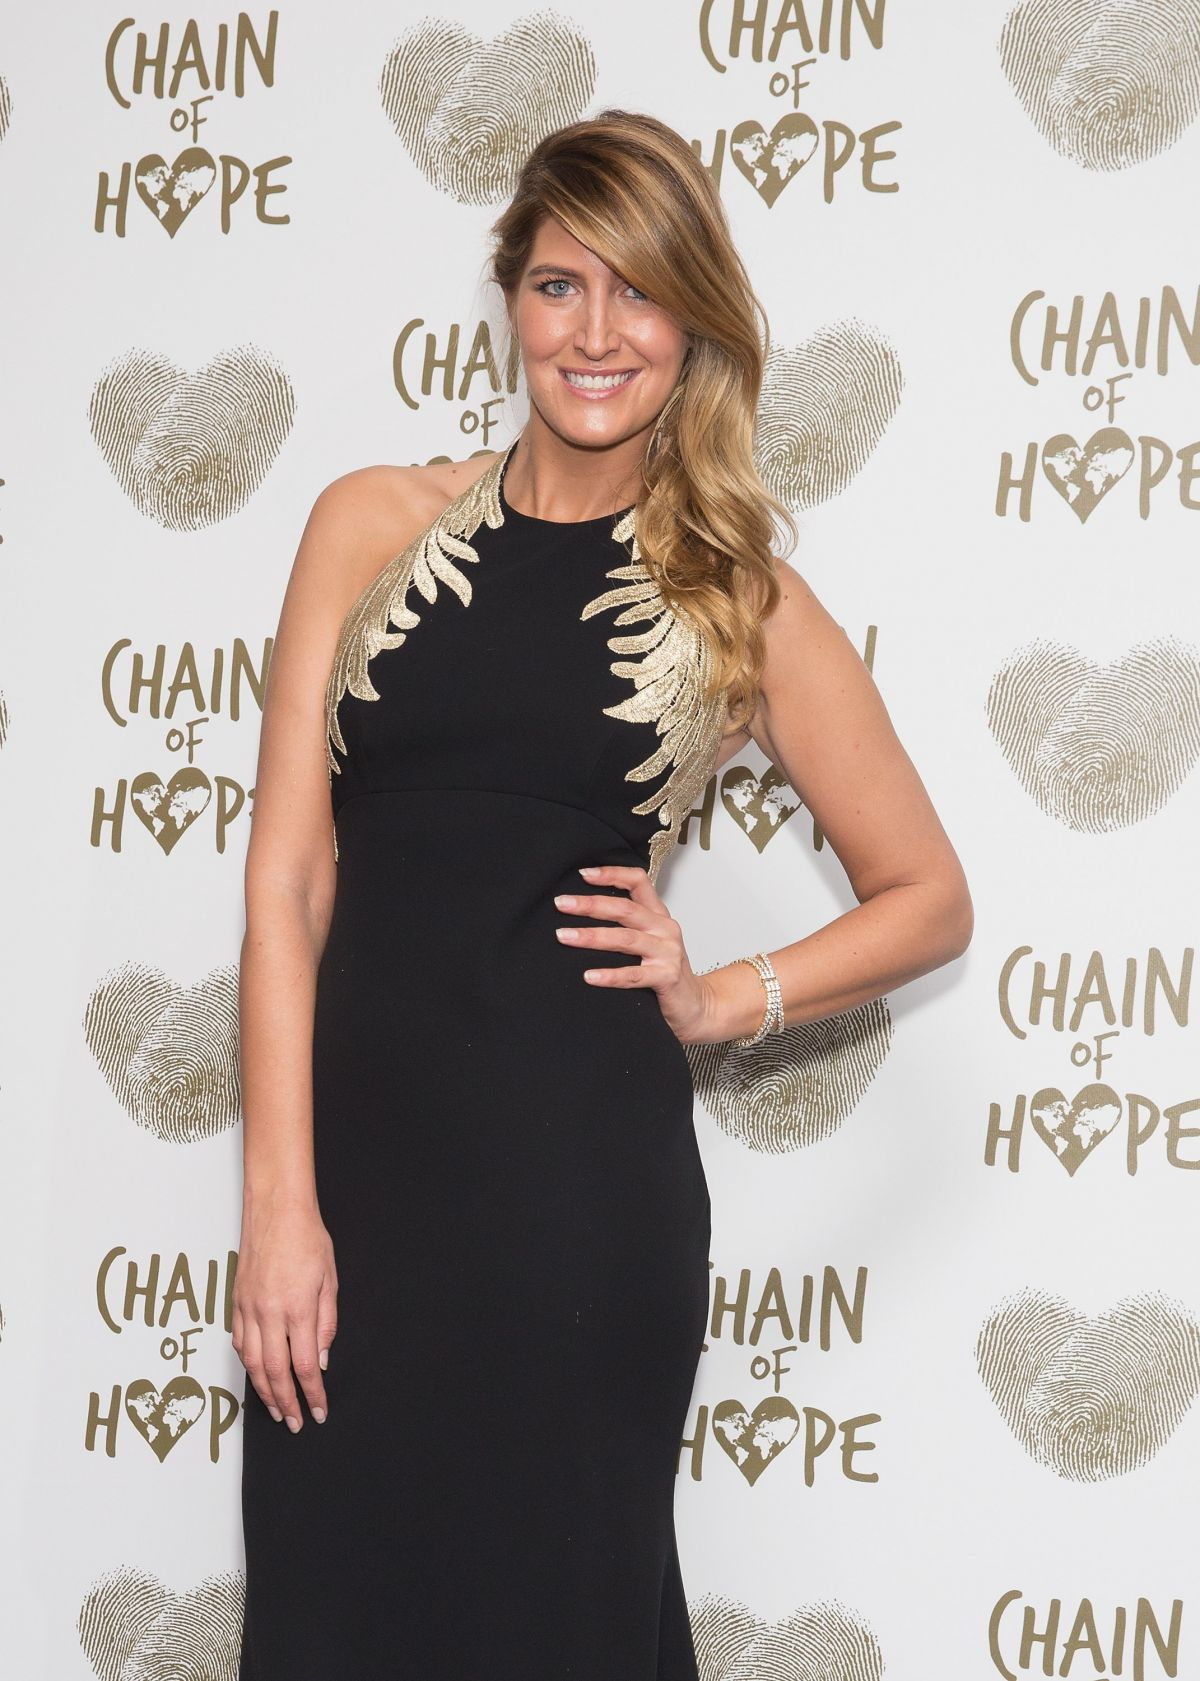 CHESKA HULL at Chain of Hope Gala Ball in London